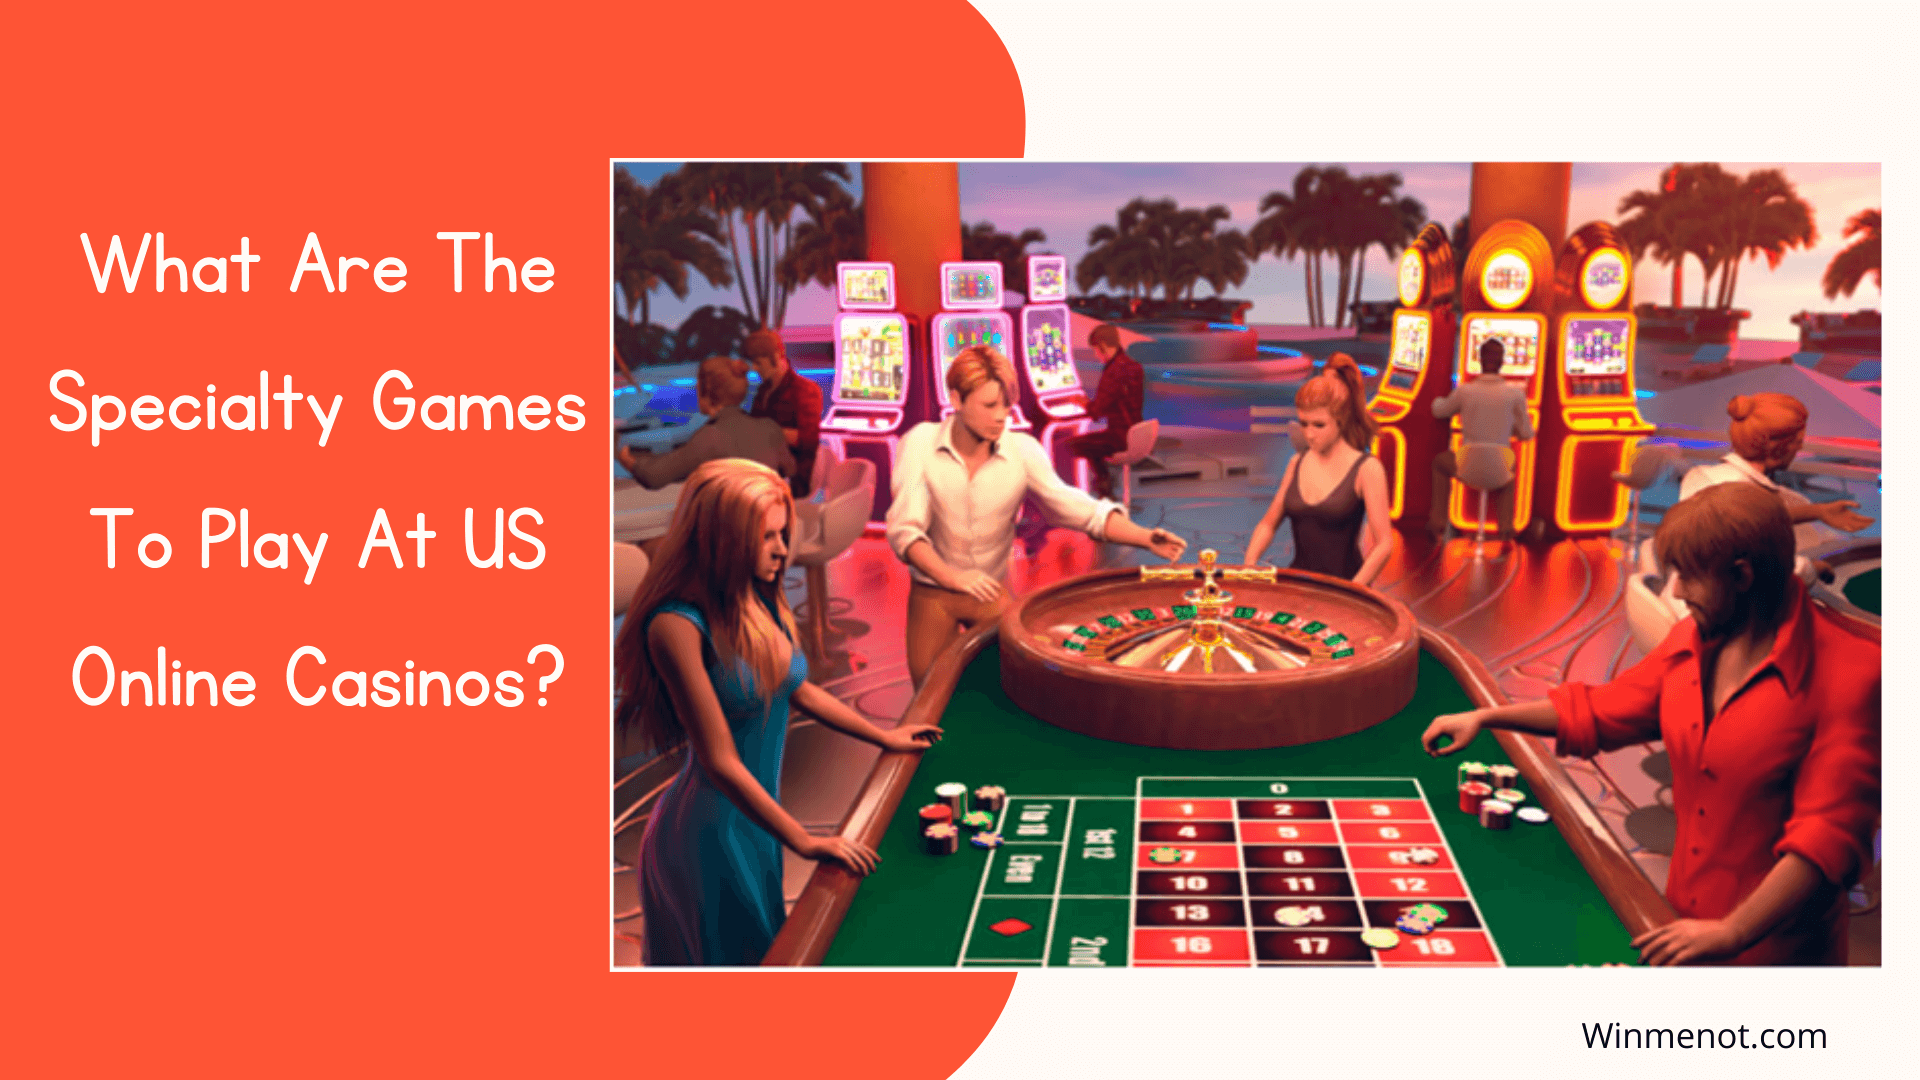 What Are The Specialty Games To Play At US Online casinos